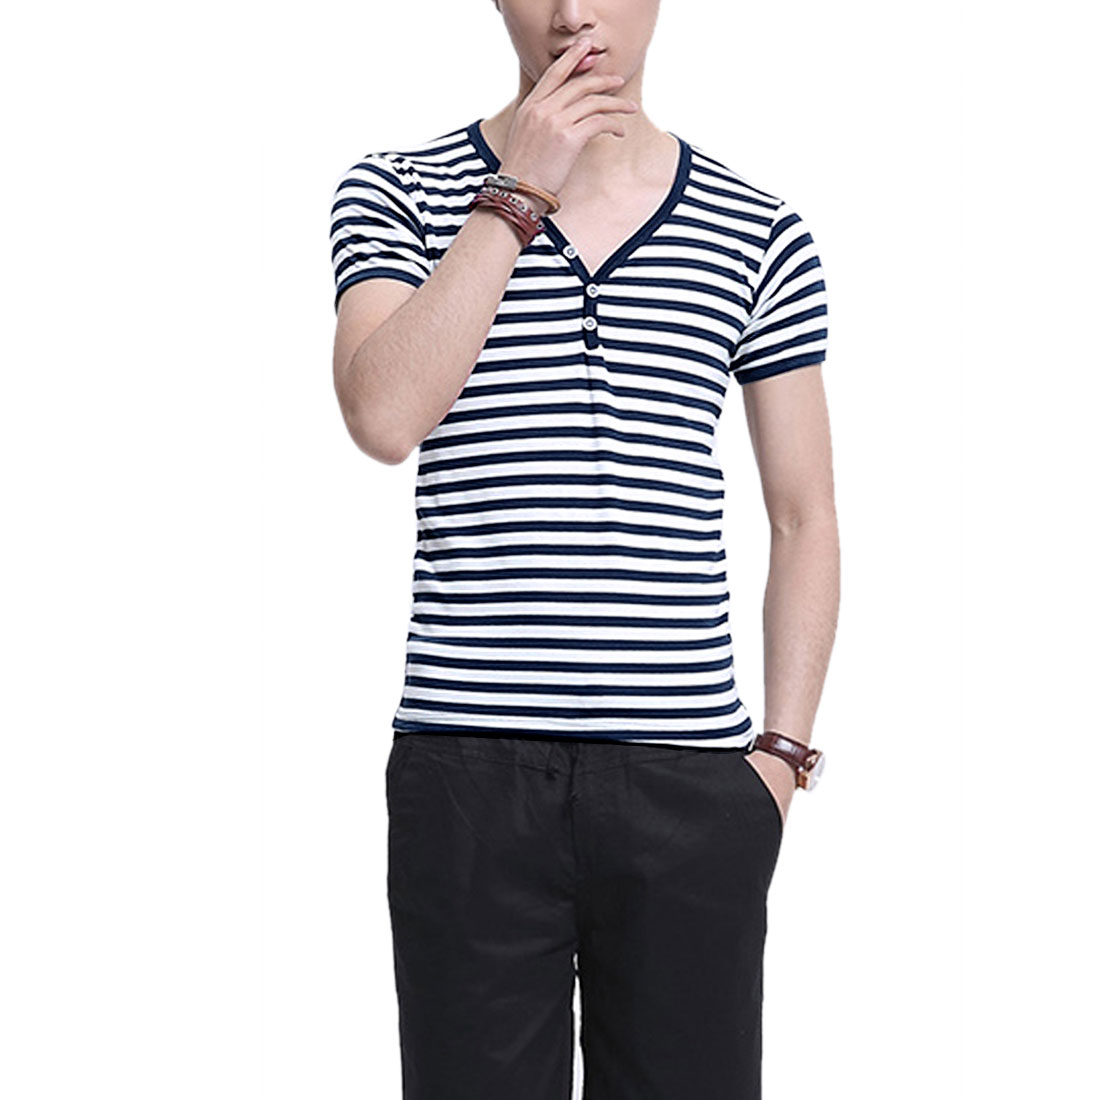 Men Personalized Stretchy Stripes Leisure Tops Shirt Dark Blue S